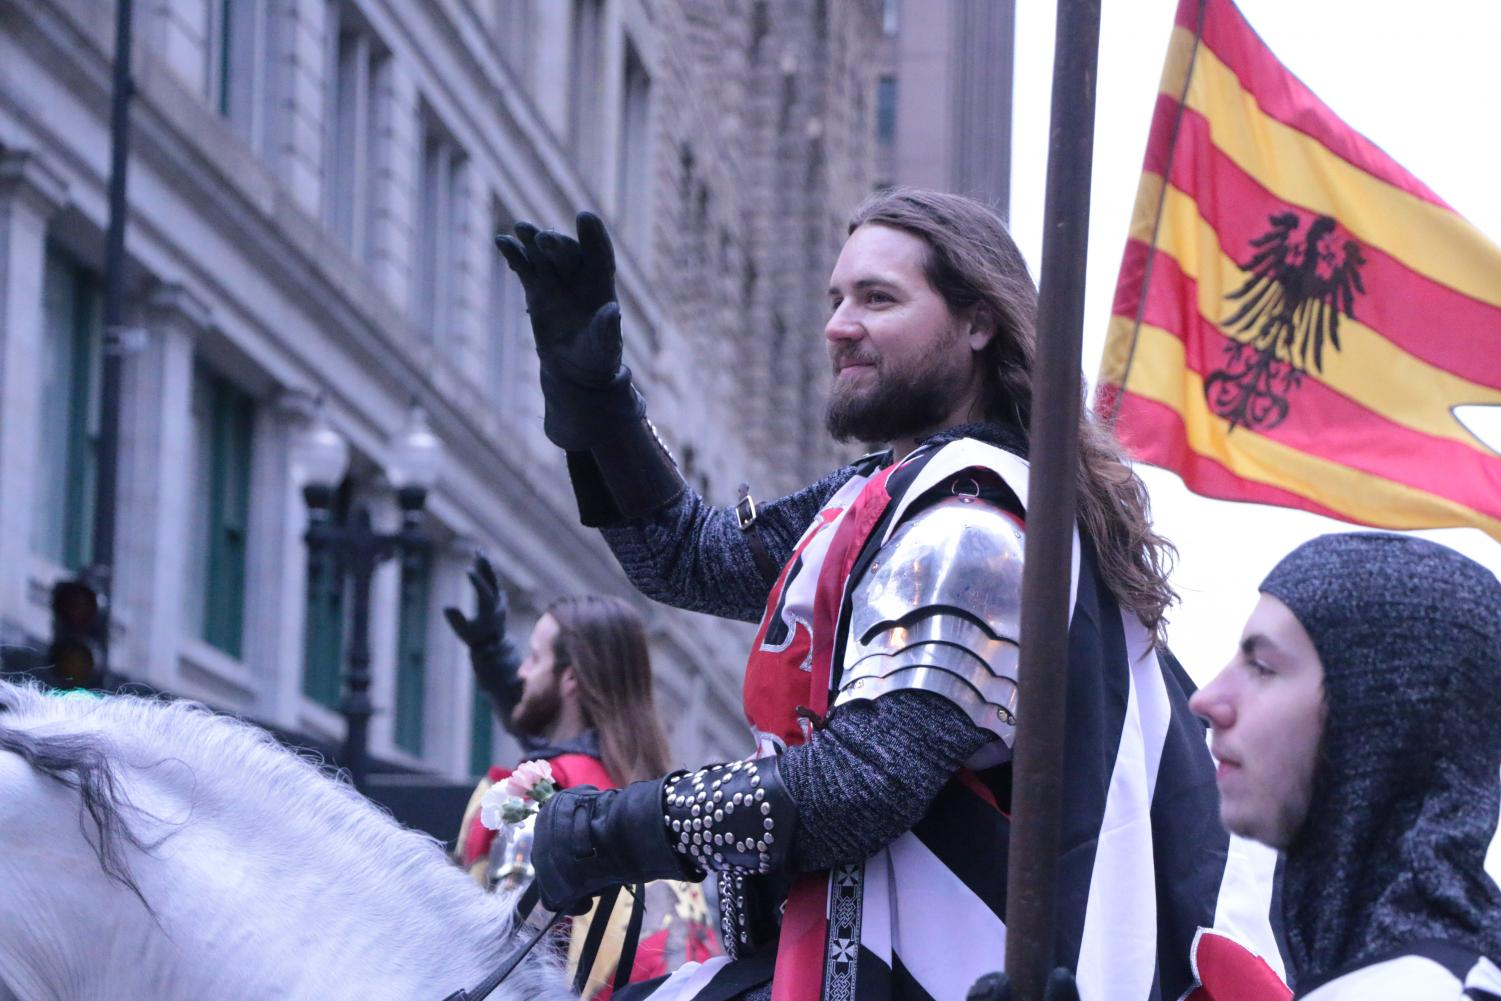 Medieval+Times+making+an+appearance+in+the+Chicago+Thanksgiving+Parade.